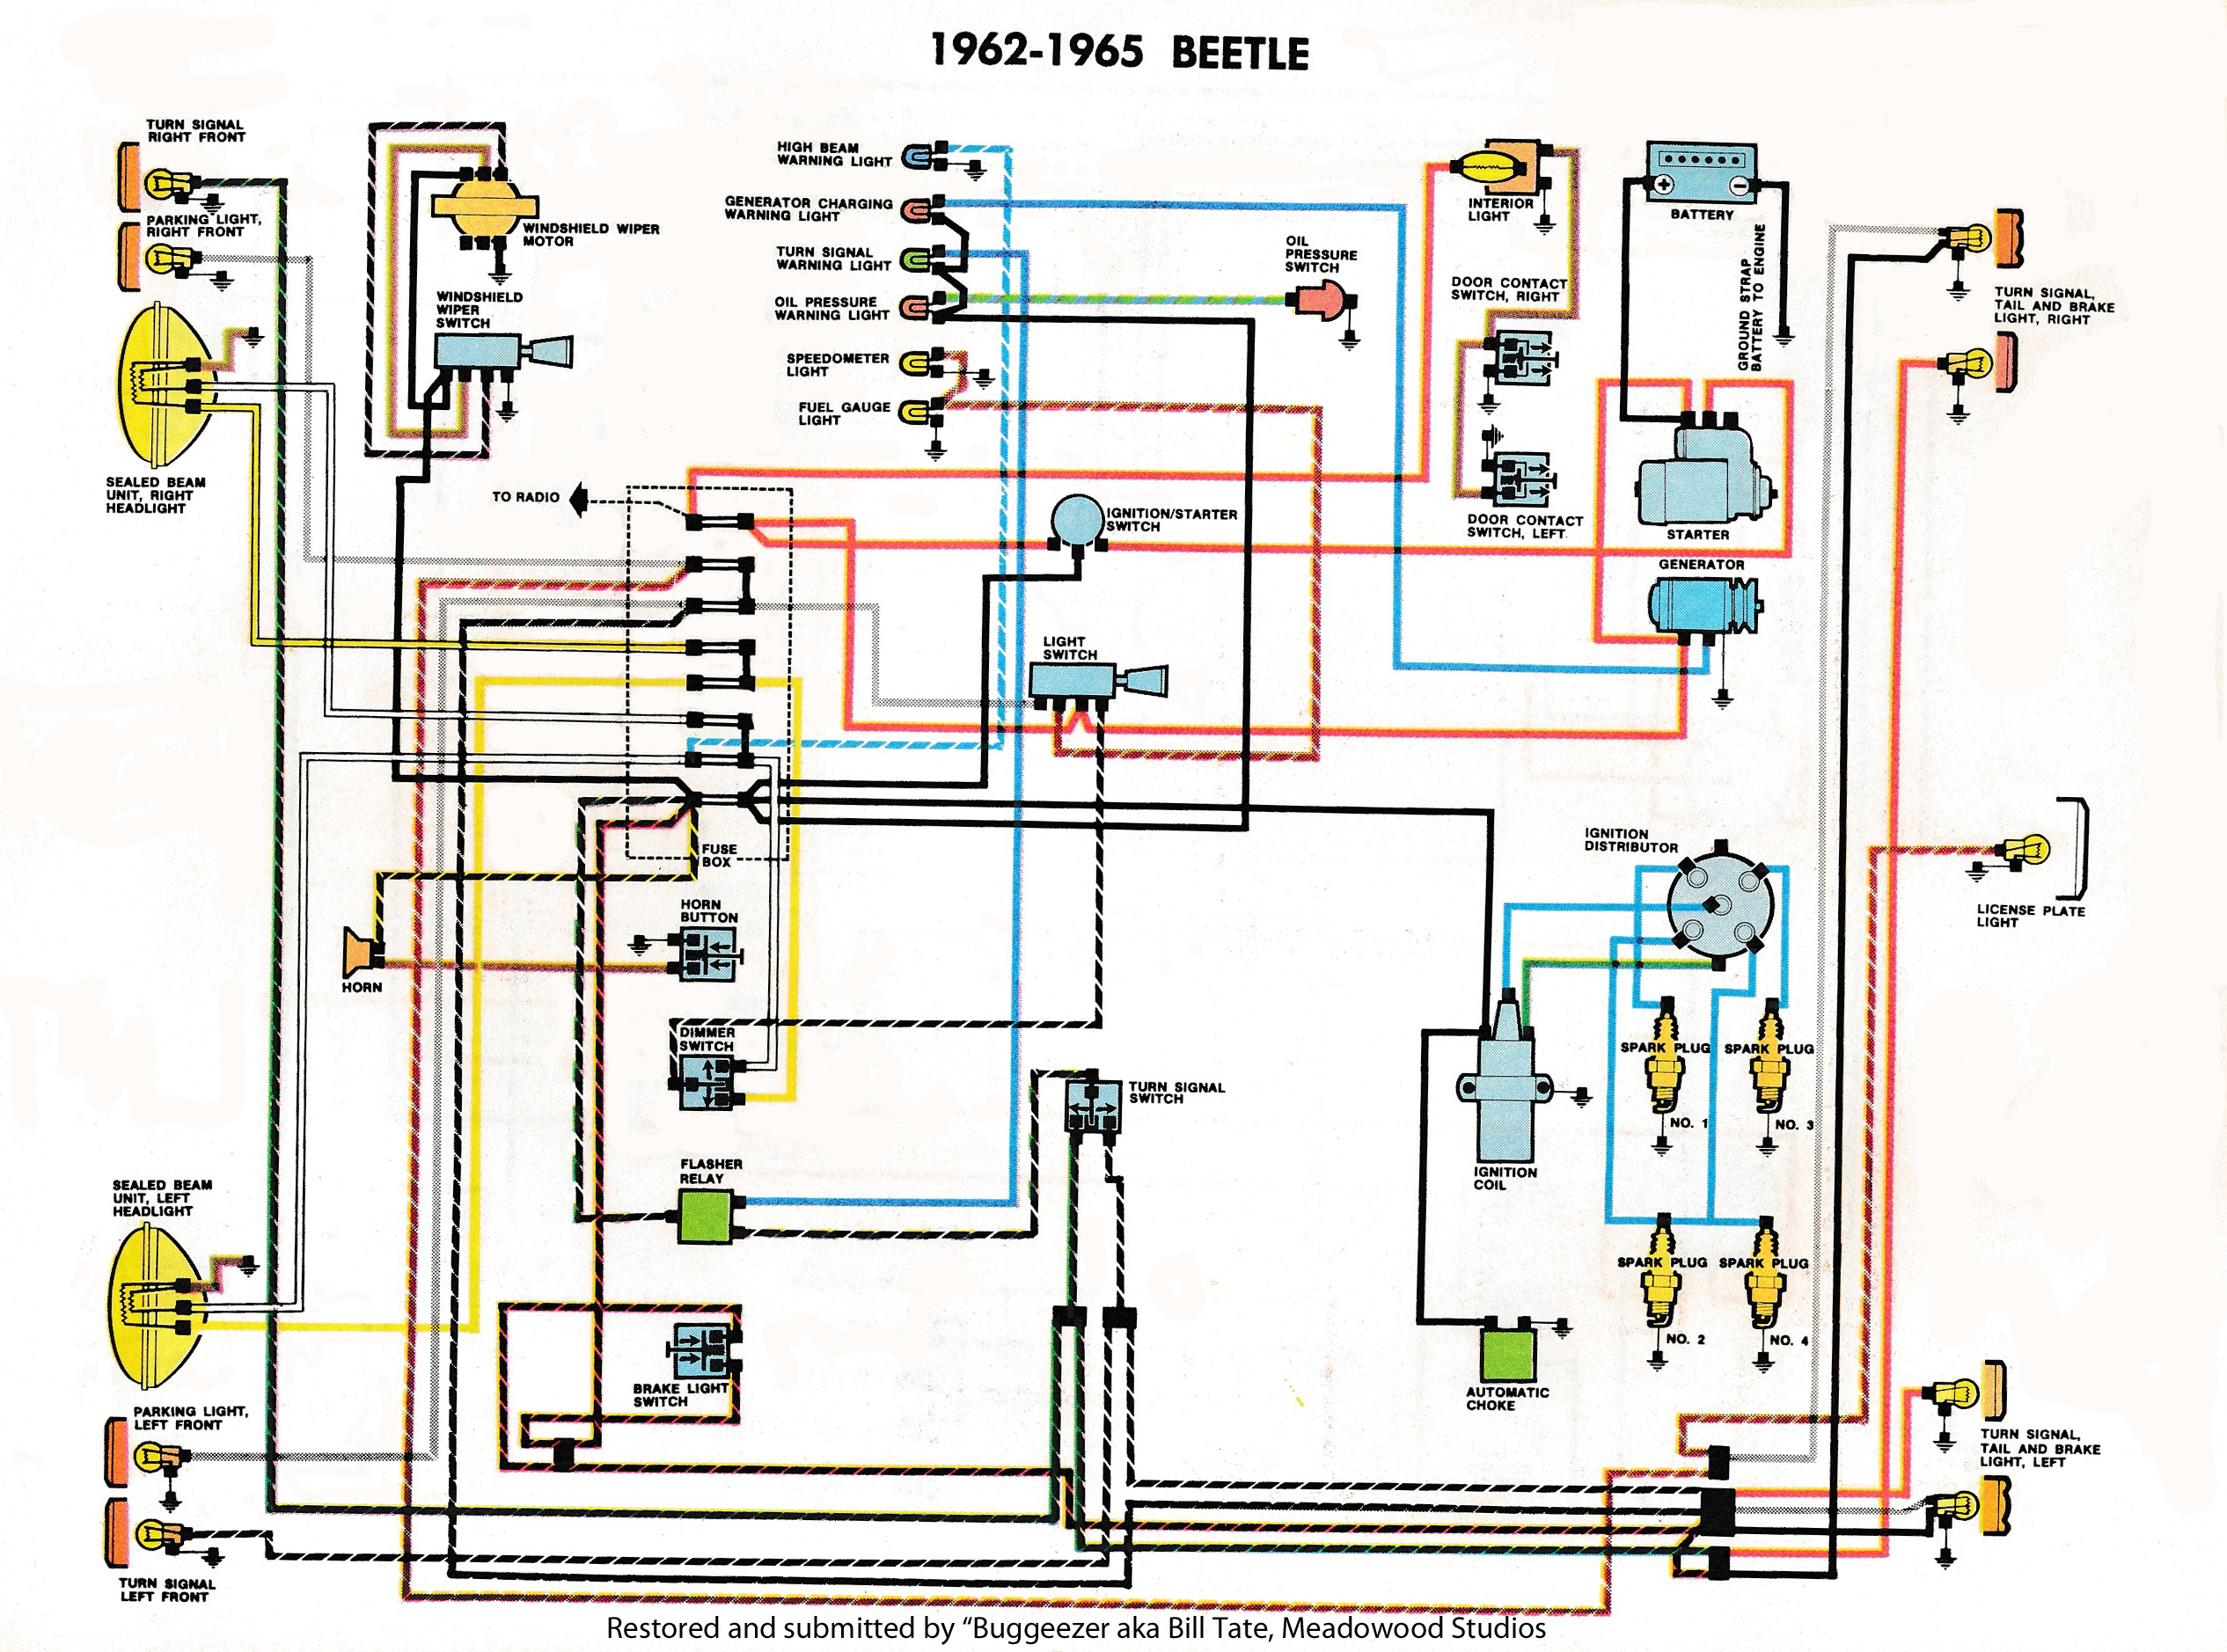 1982 Peterbilt 356 Turn Signal Wiring Diagram 379 Fuse Box Thesamba Com Type 1 Diagrams Rh 2000 1996